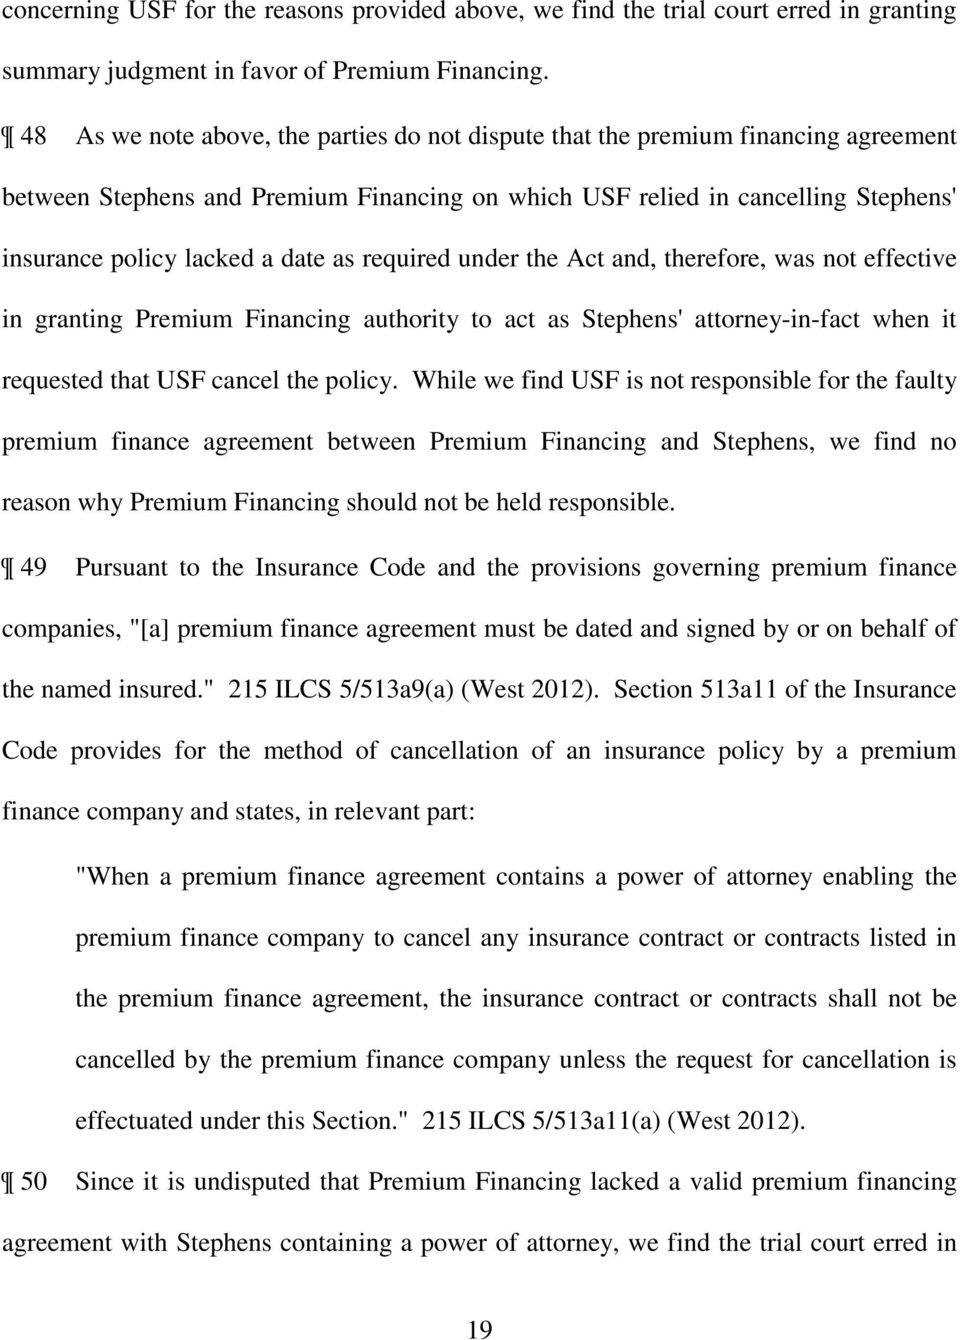 as required under the Act and, therefore, was not effective in granting Premium Financing authority to act as Stephens' attorney-in-fact when it requested that USF cancel the policy.